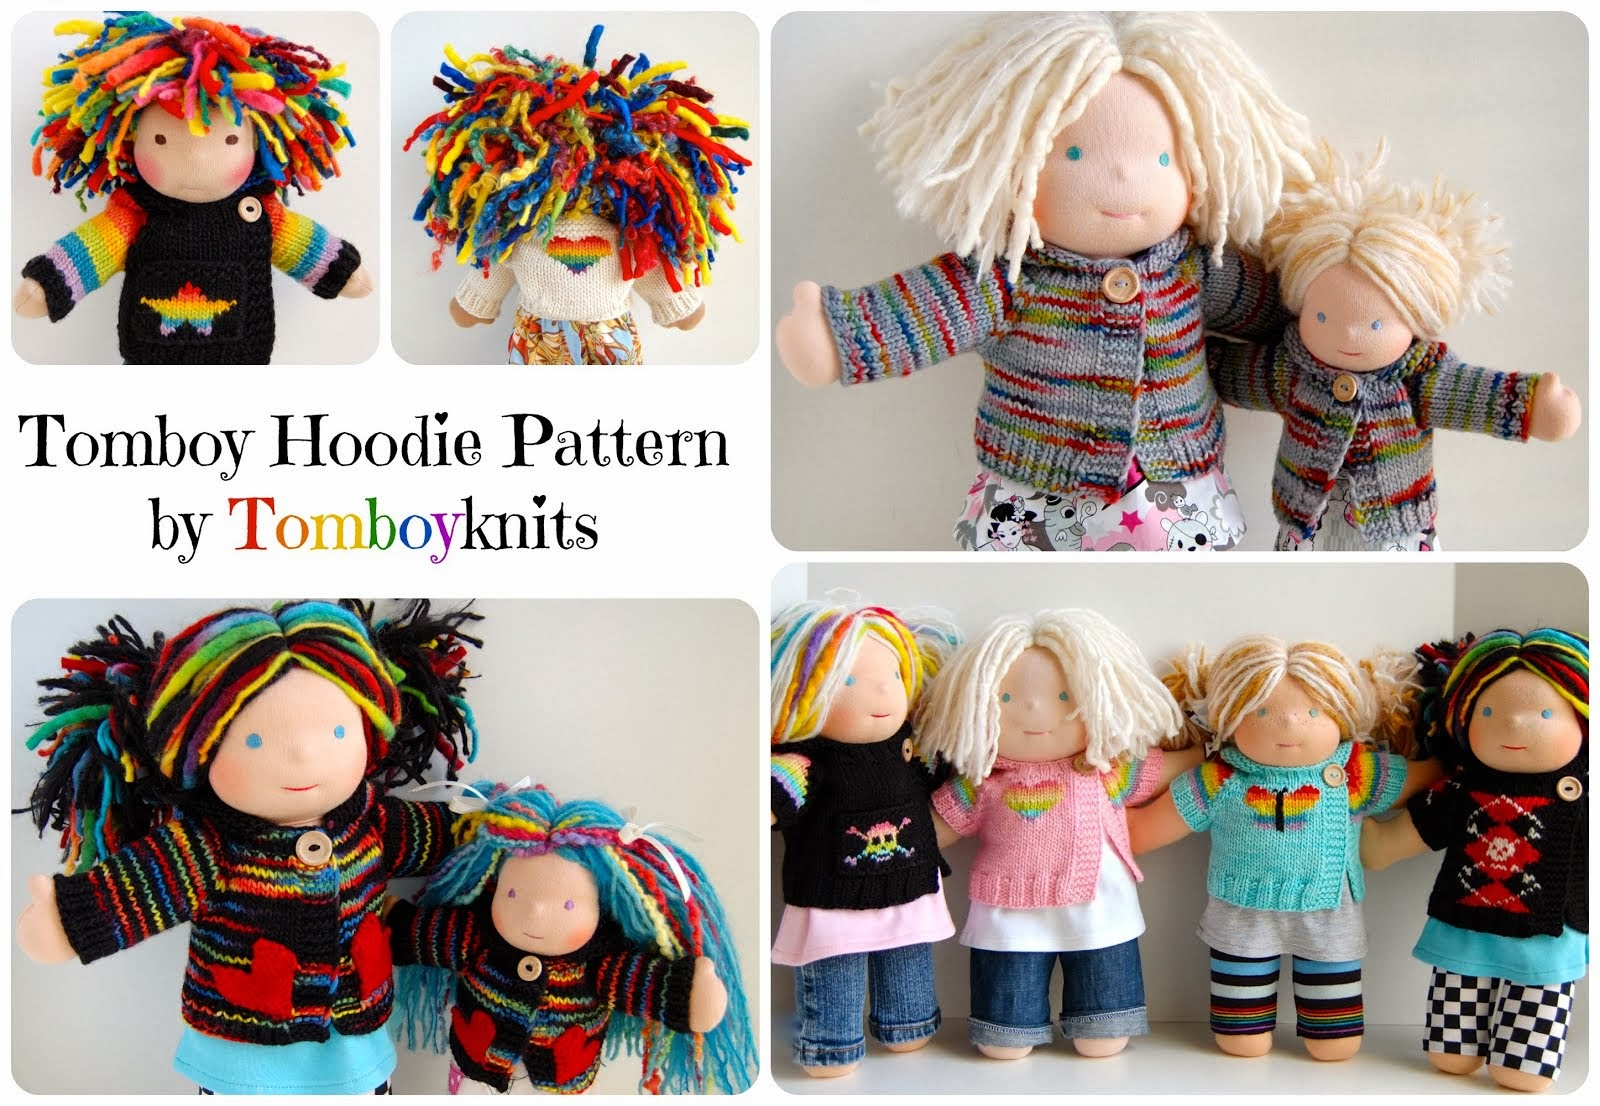 Patterns by Tomboyknits